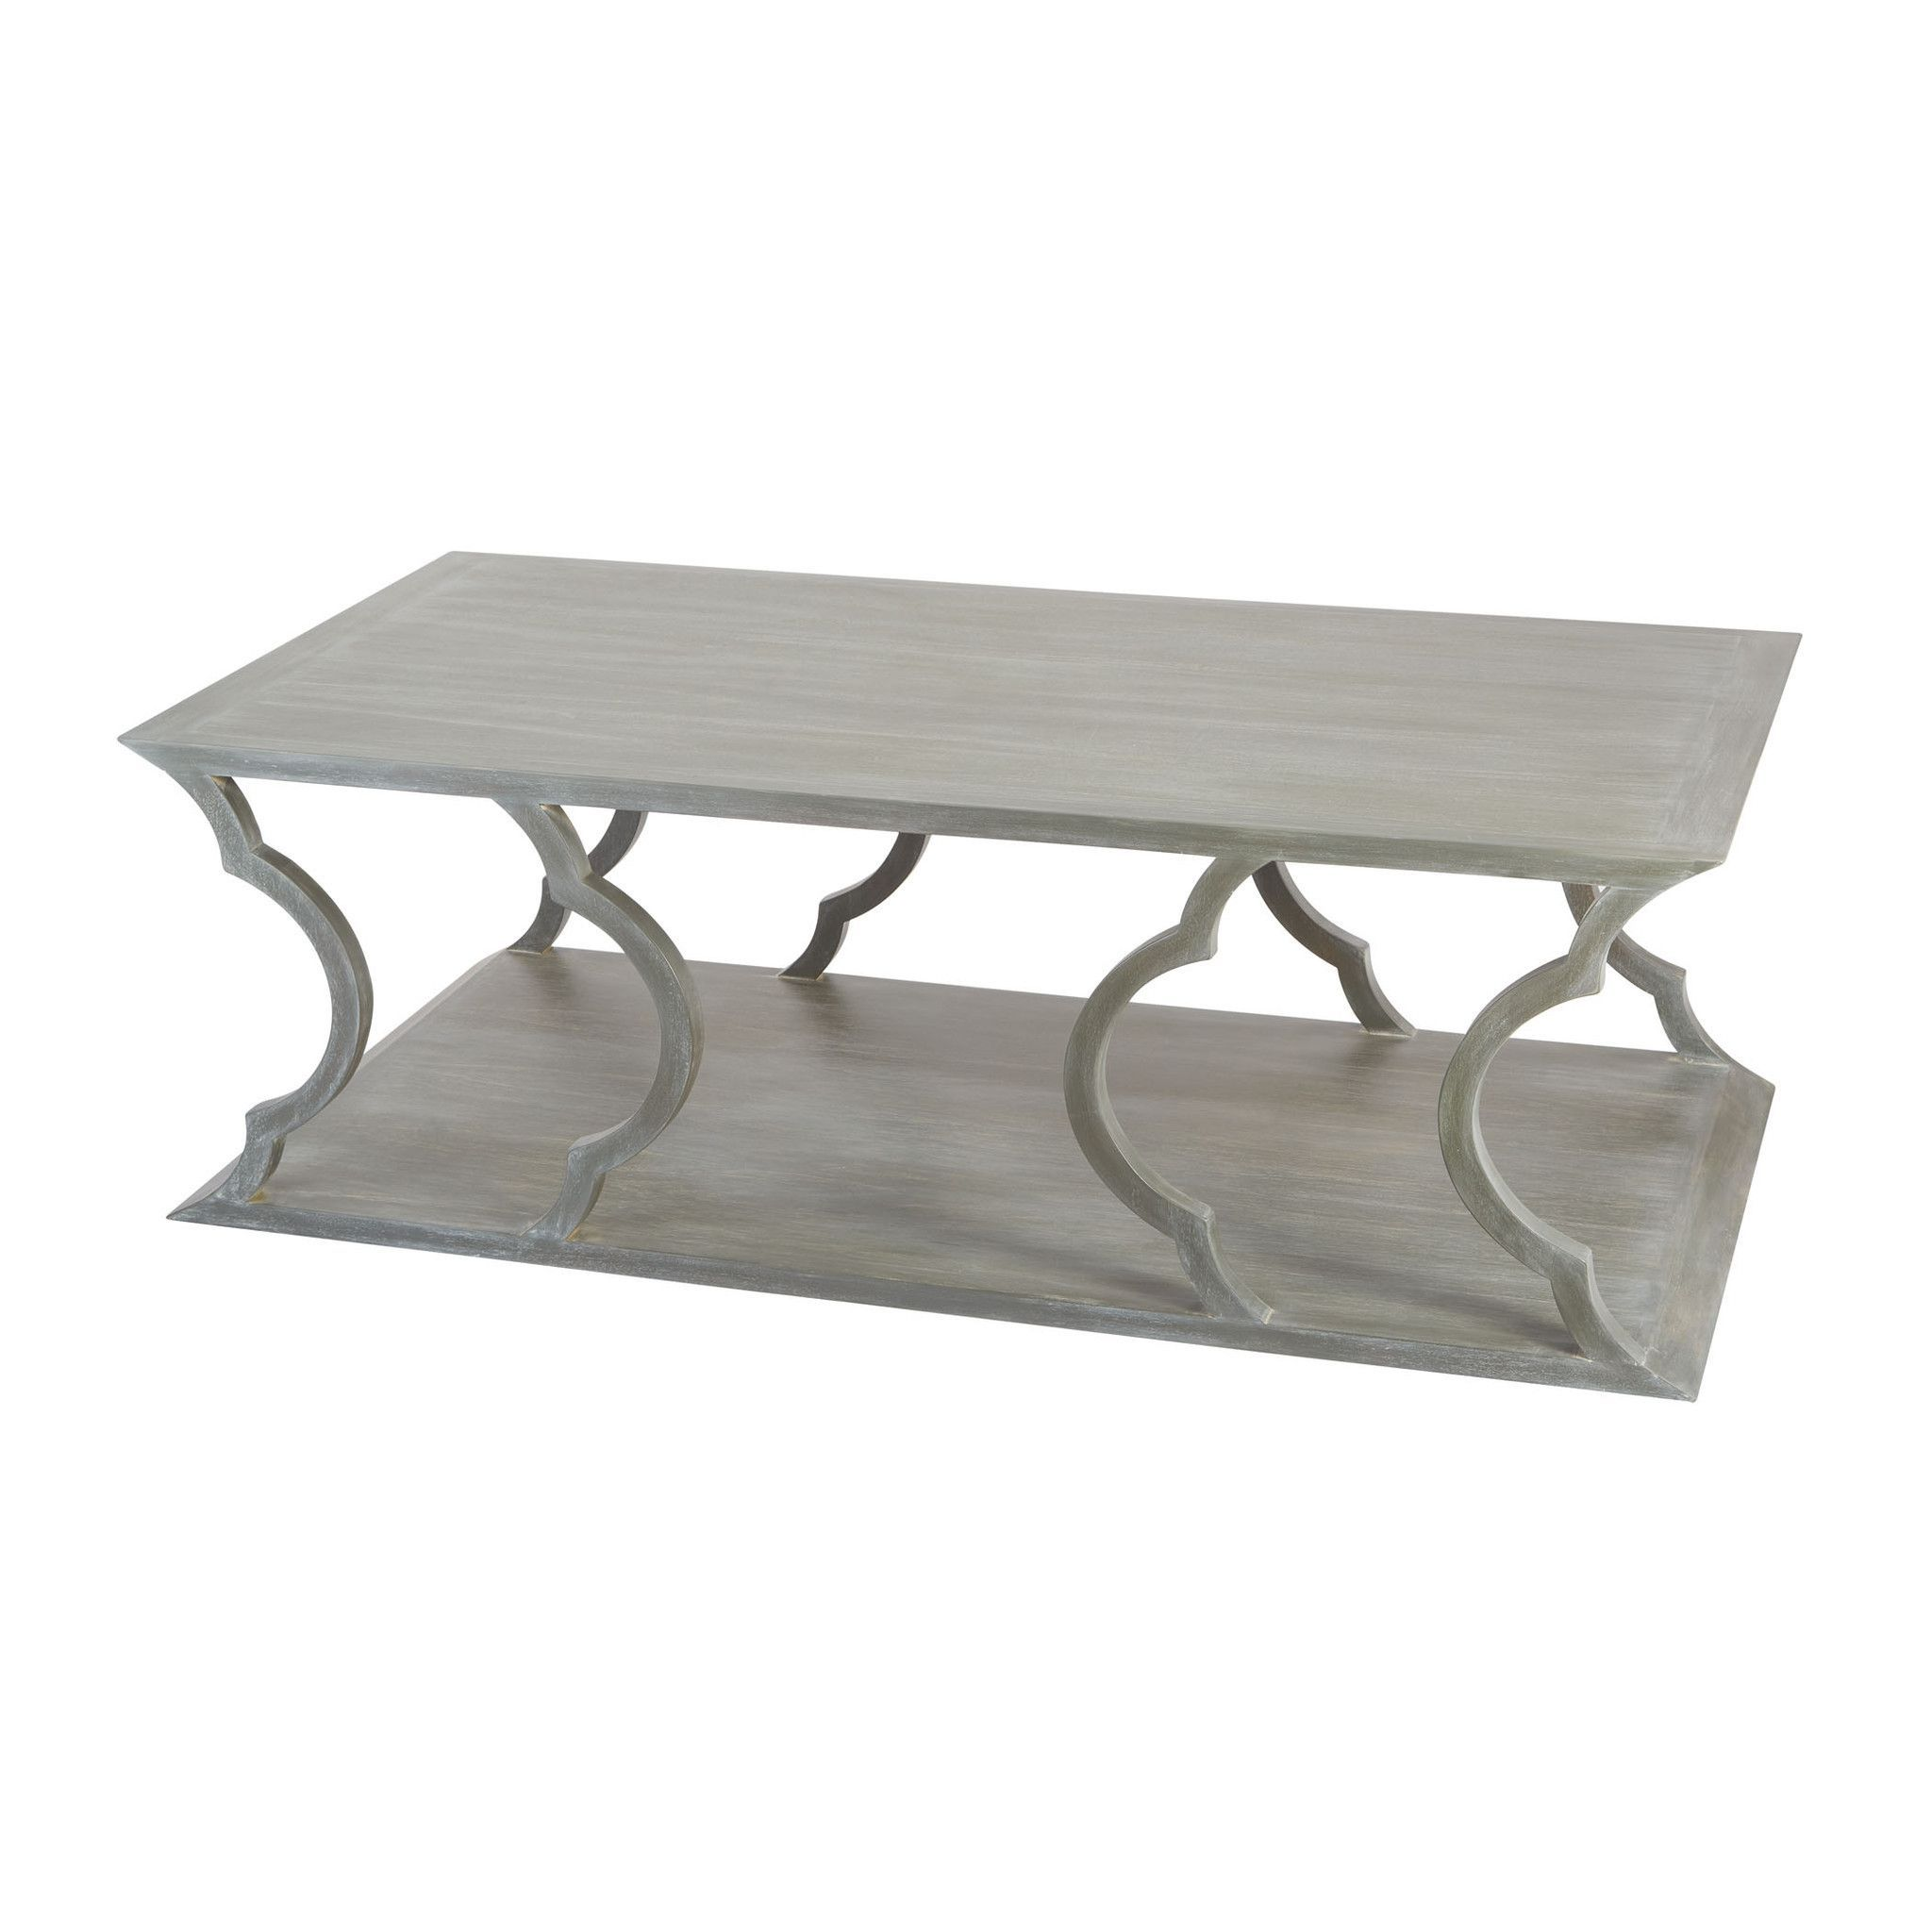 Mahogany cloud coffee table design by lazy susan coffee table